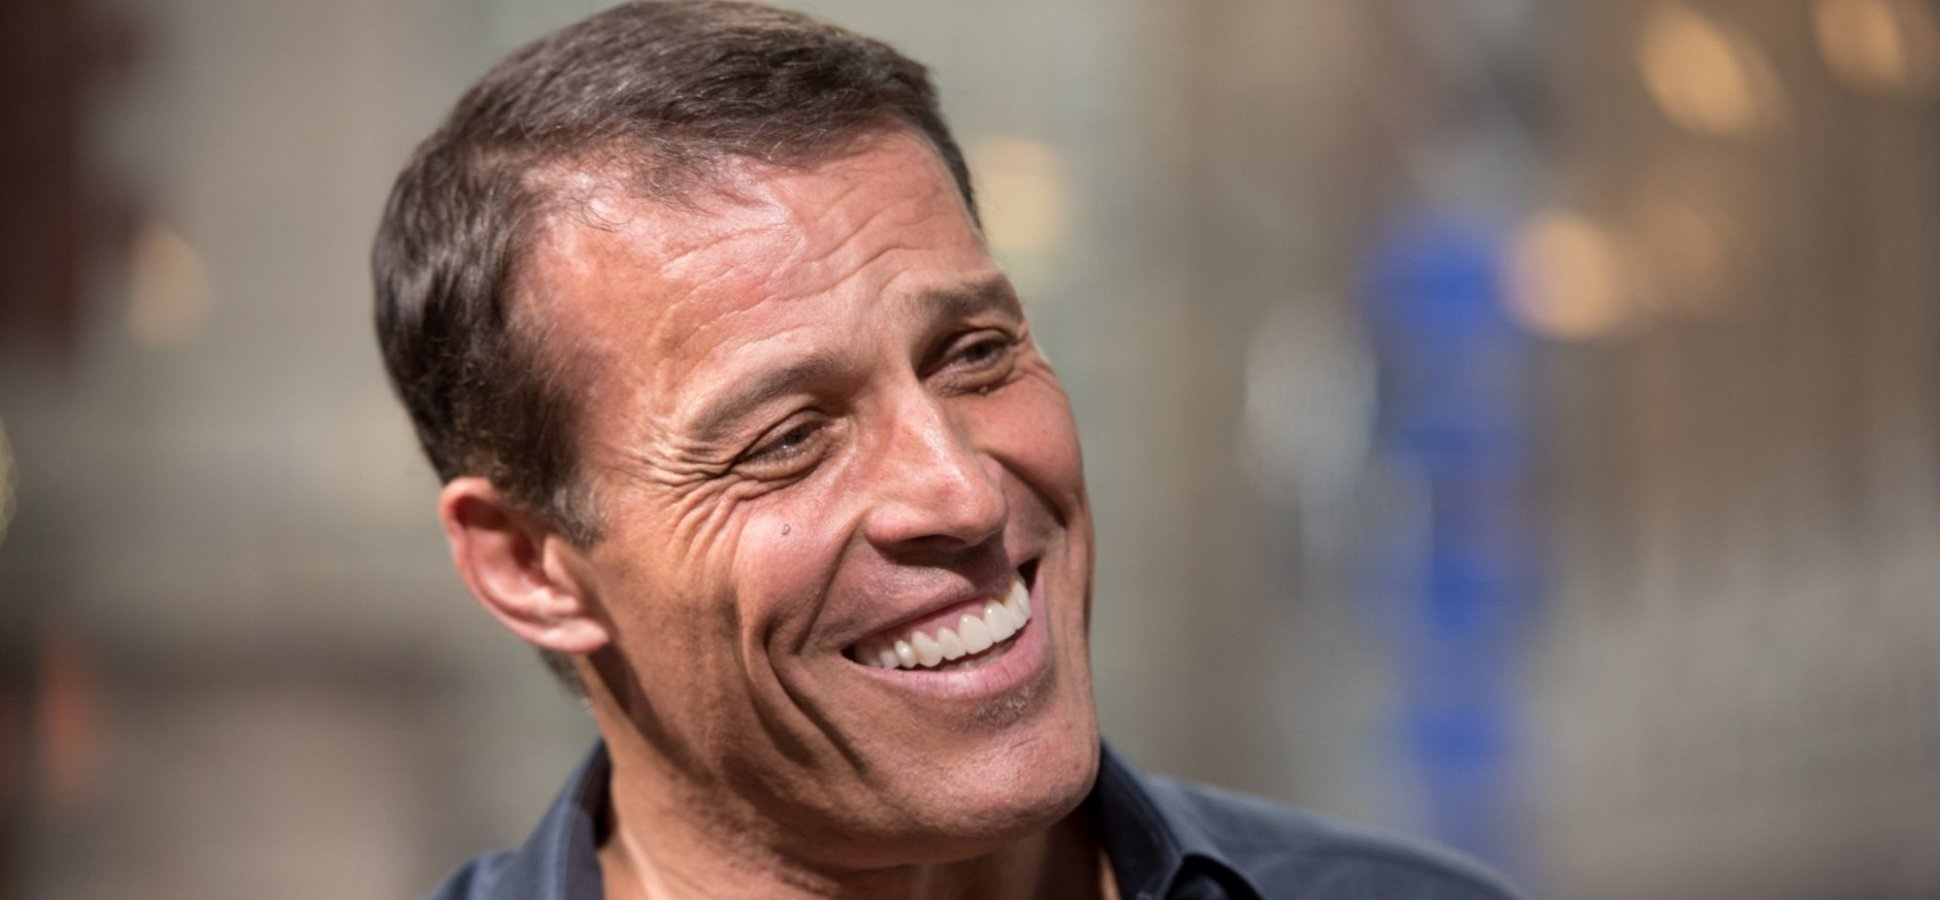 Tony Robbins, Jim Carrey, and BuzzFeed Publisher Dao Nguyen Agree: 1 Question Leads to Success